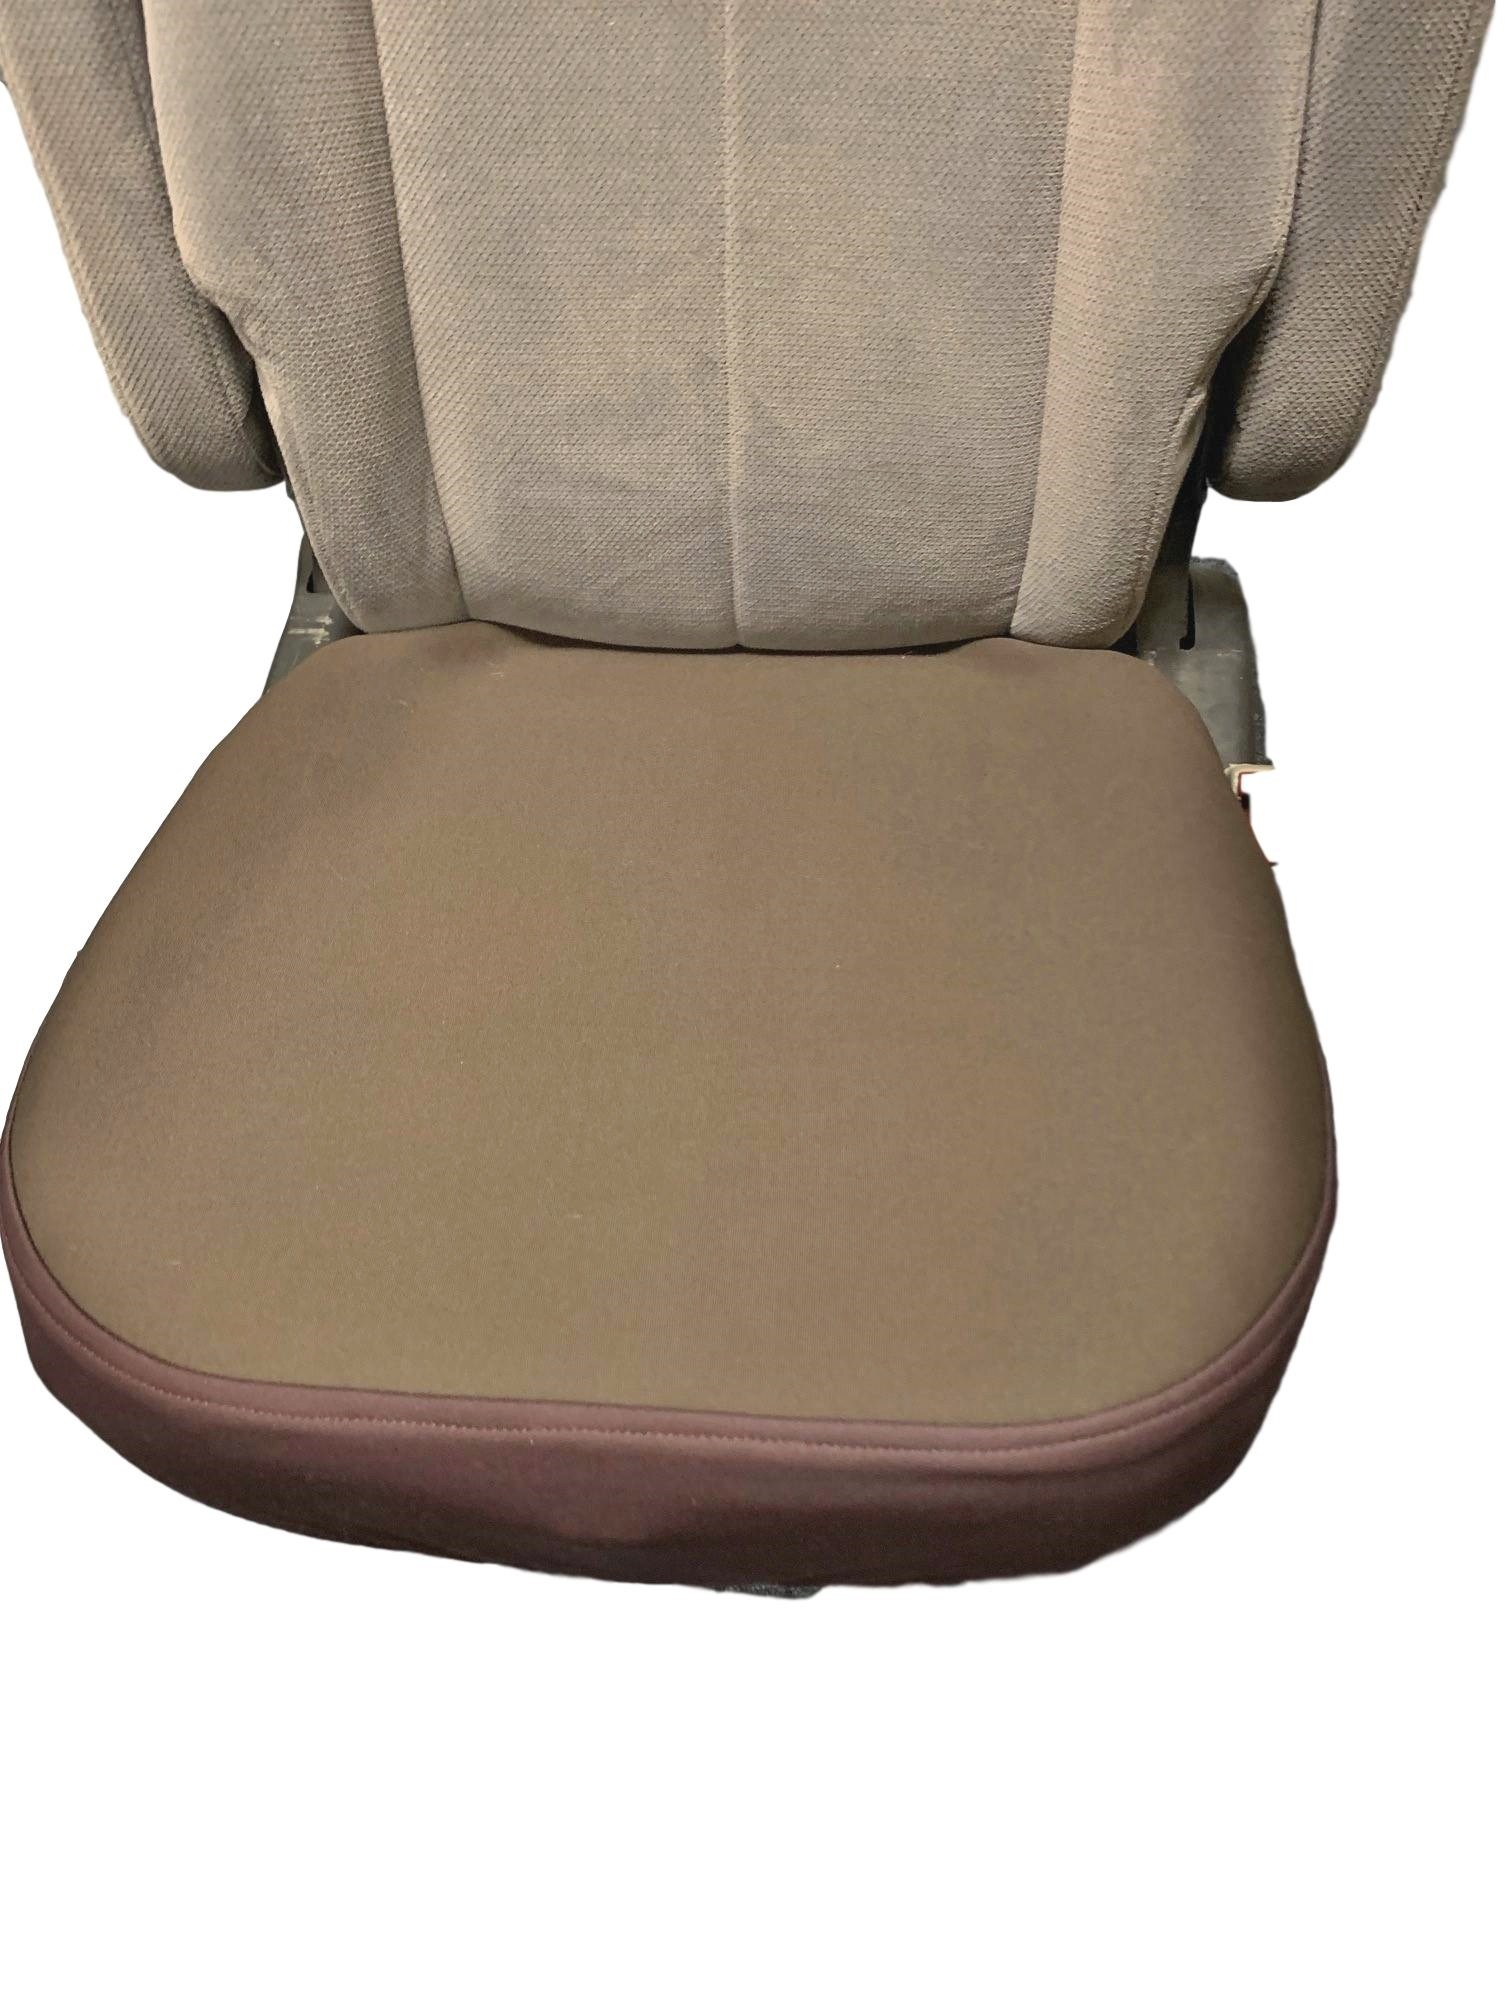 Neoprene Bottom Seat Cover for Ford Fusion 2010-19-(SINGLE)